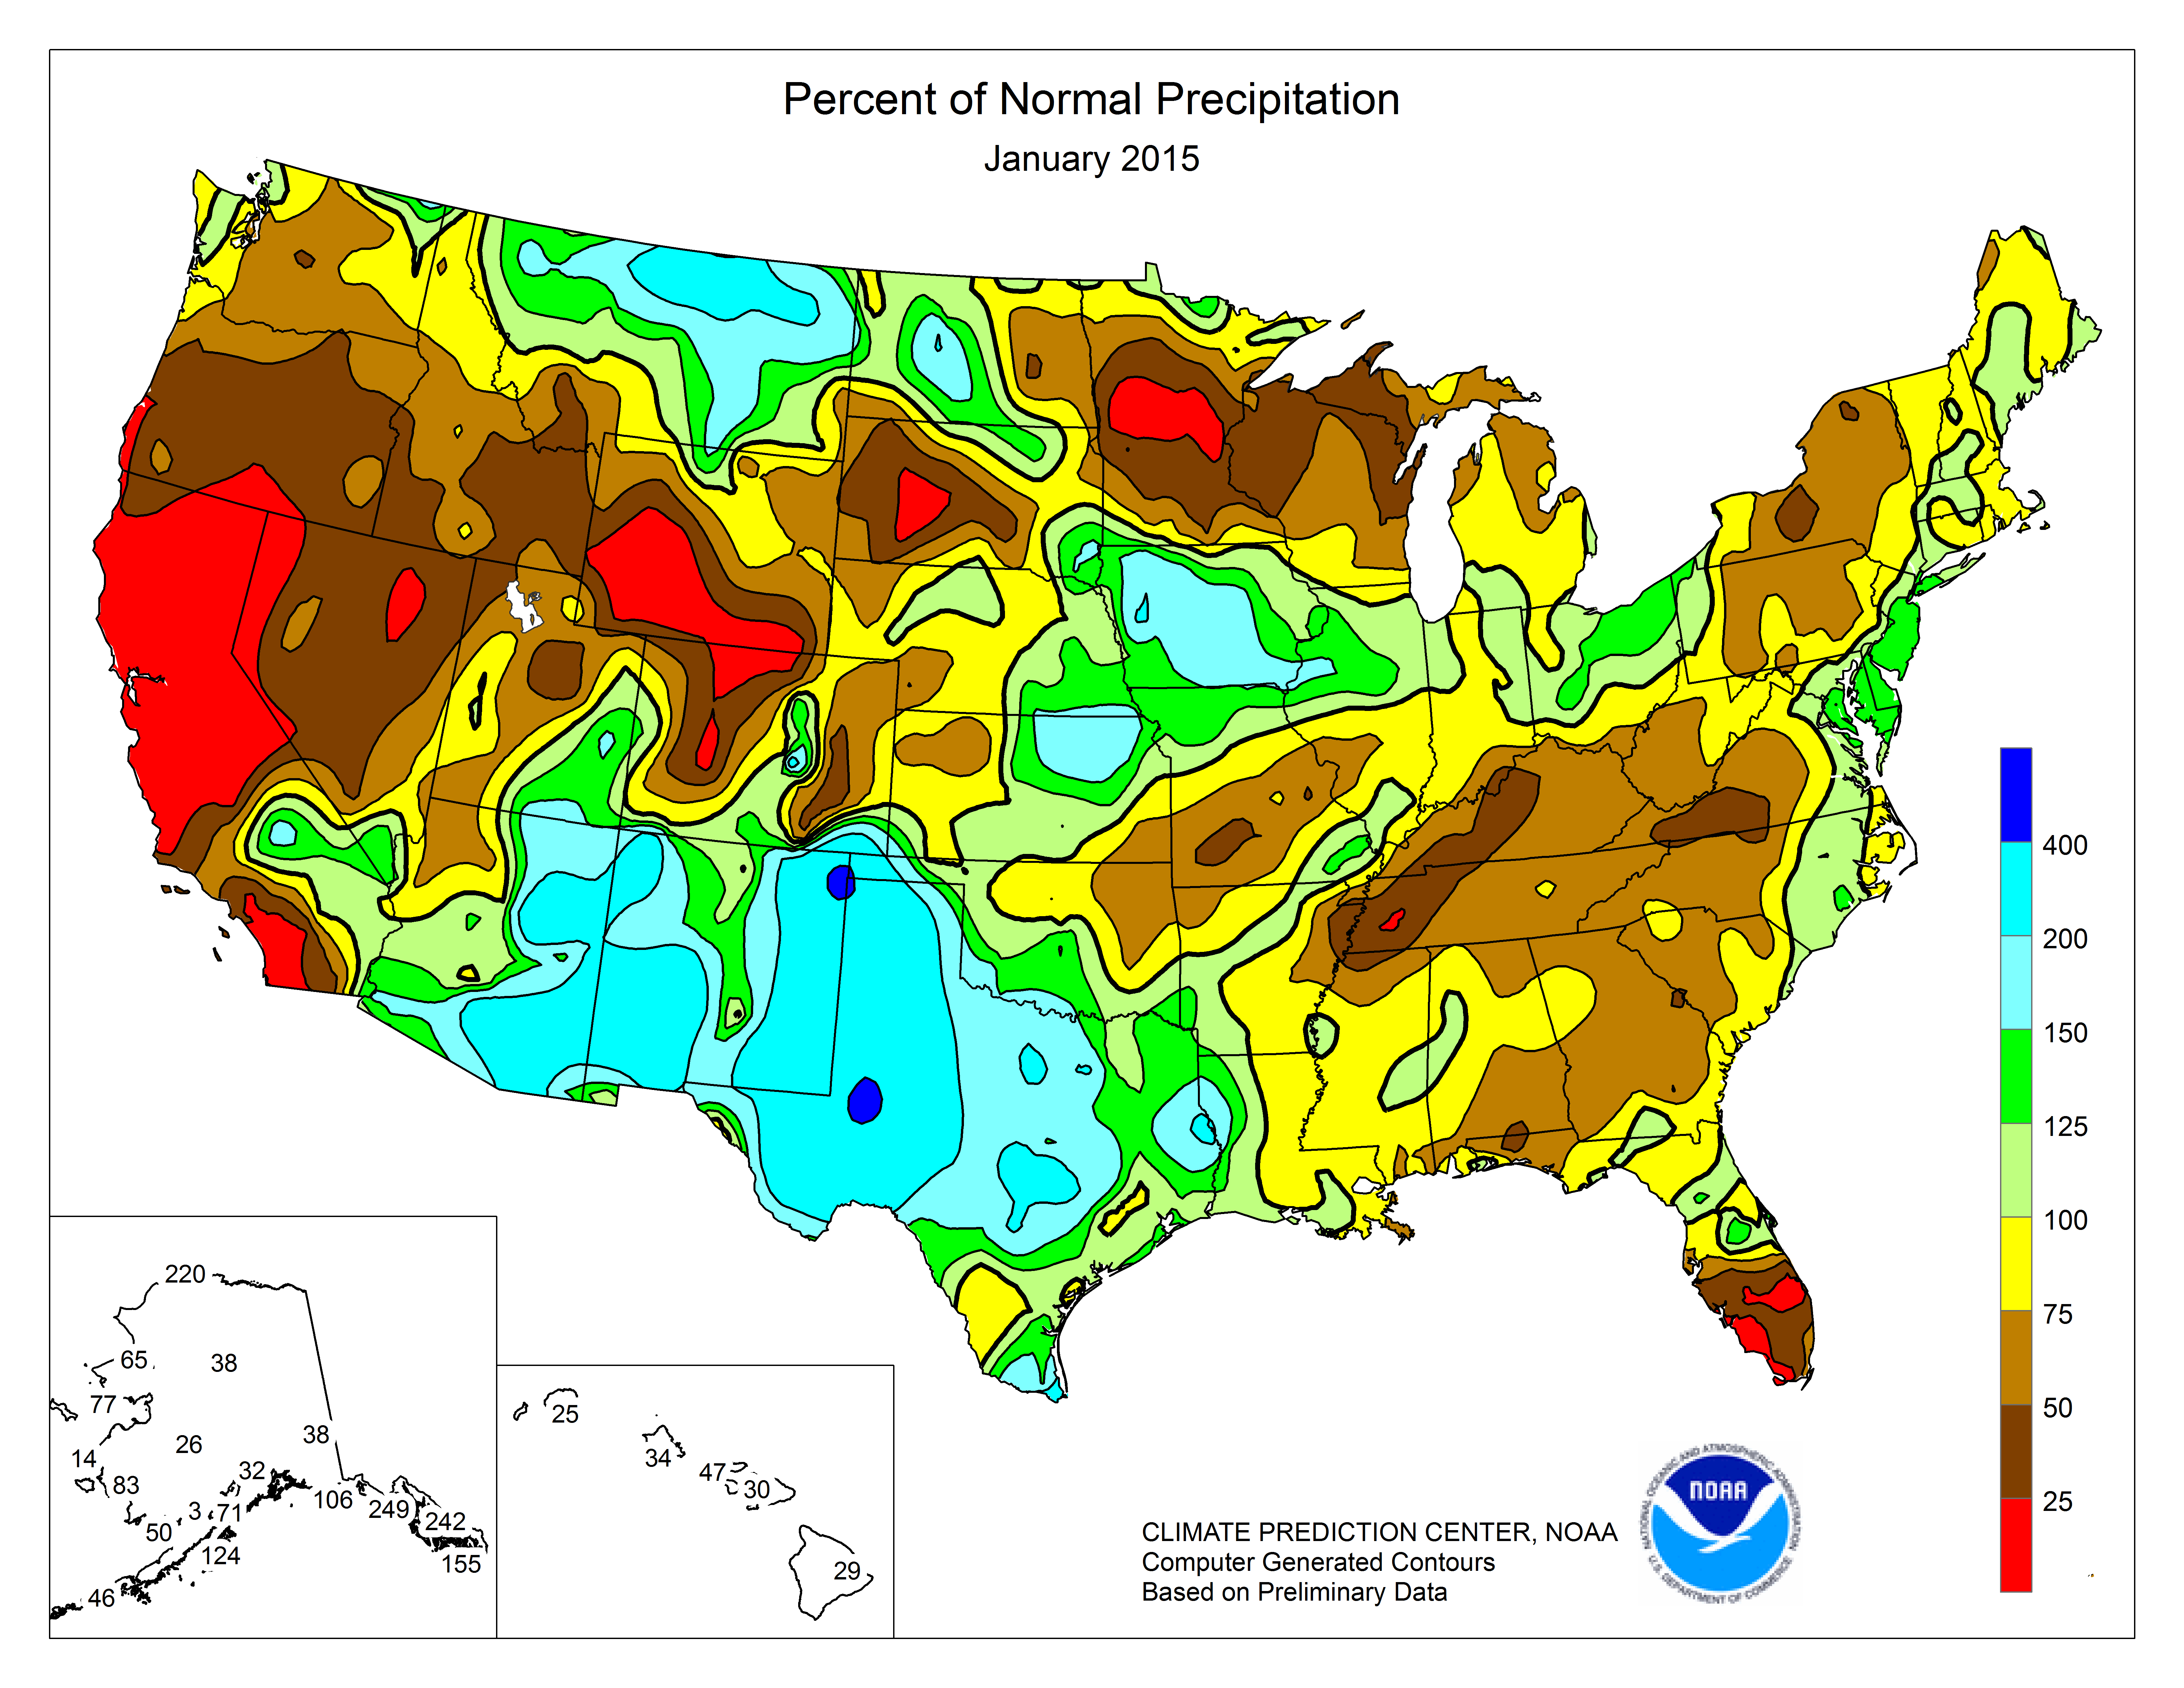 Noaa Precipitation Map Climate Prediction Center   Monitoring and Data: United States One